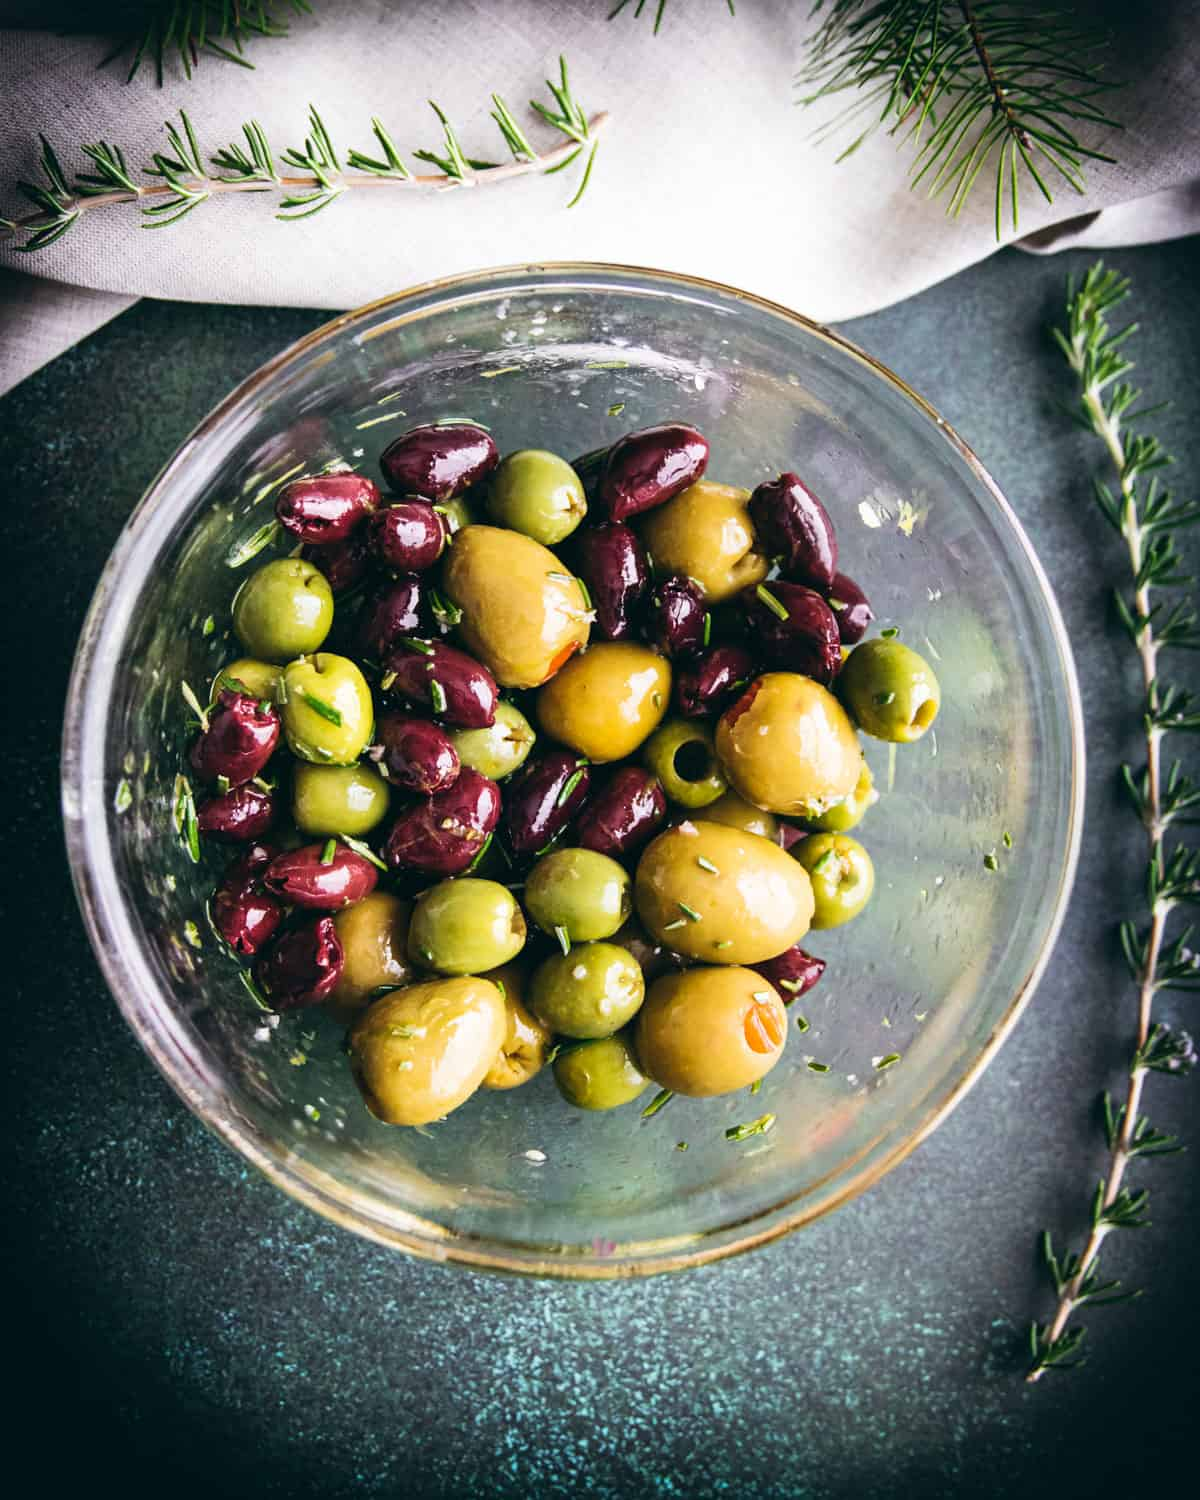 a variety of olives and other ingredients mixed together in a bowl